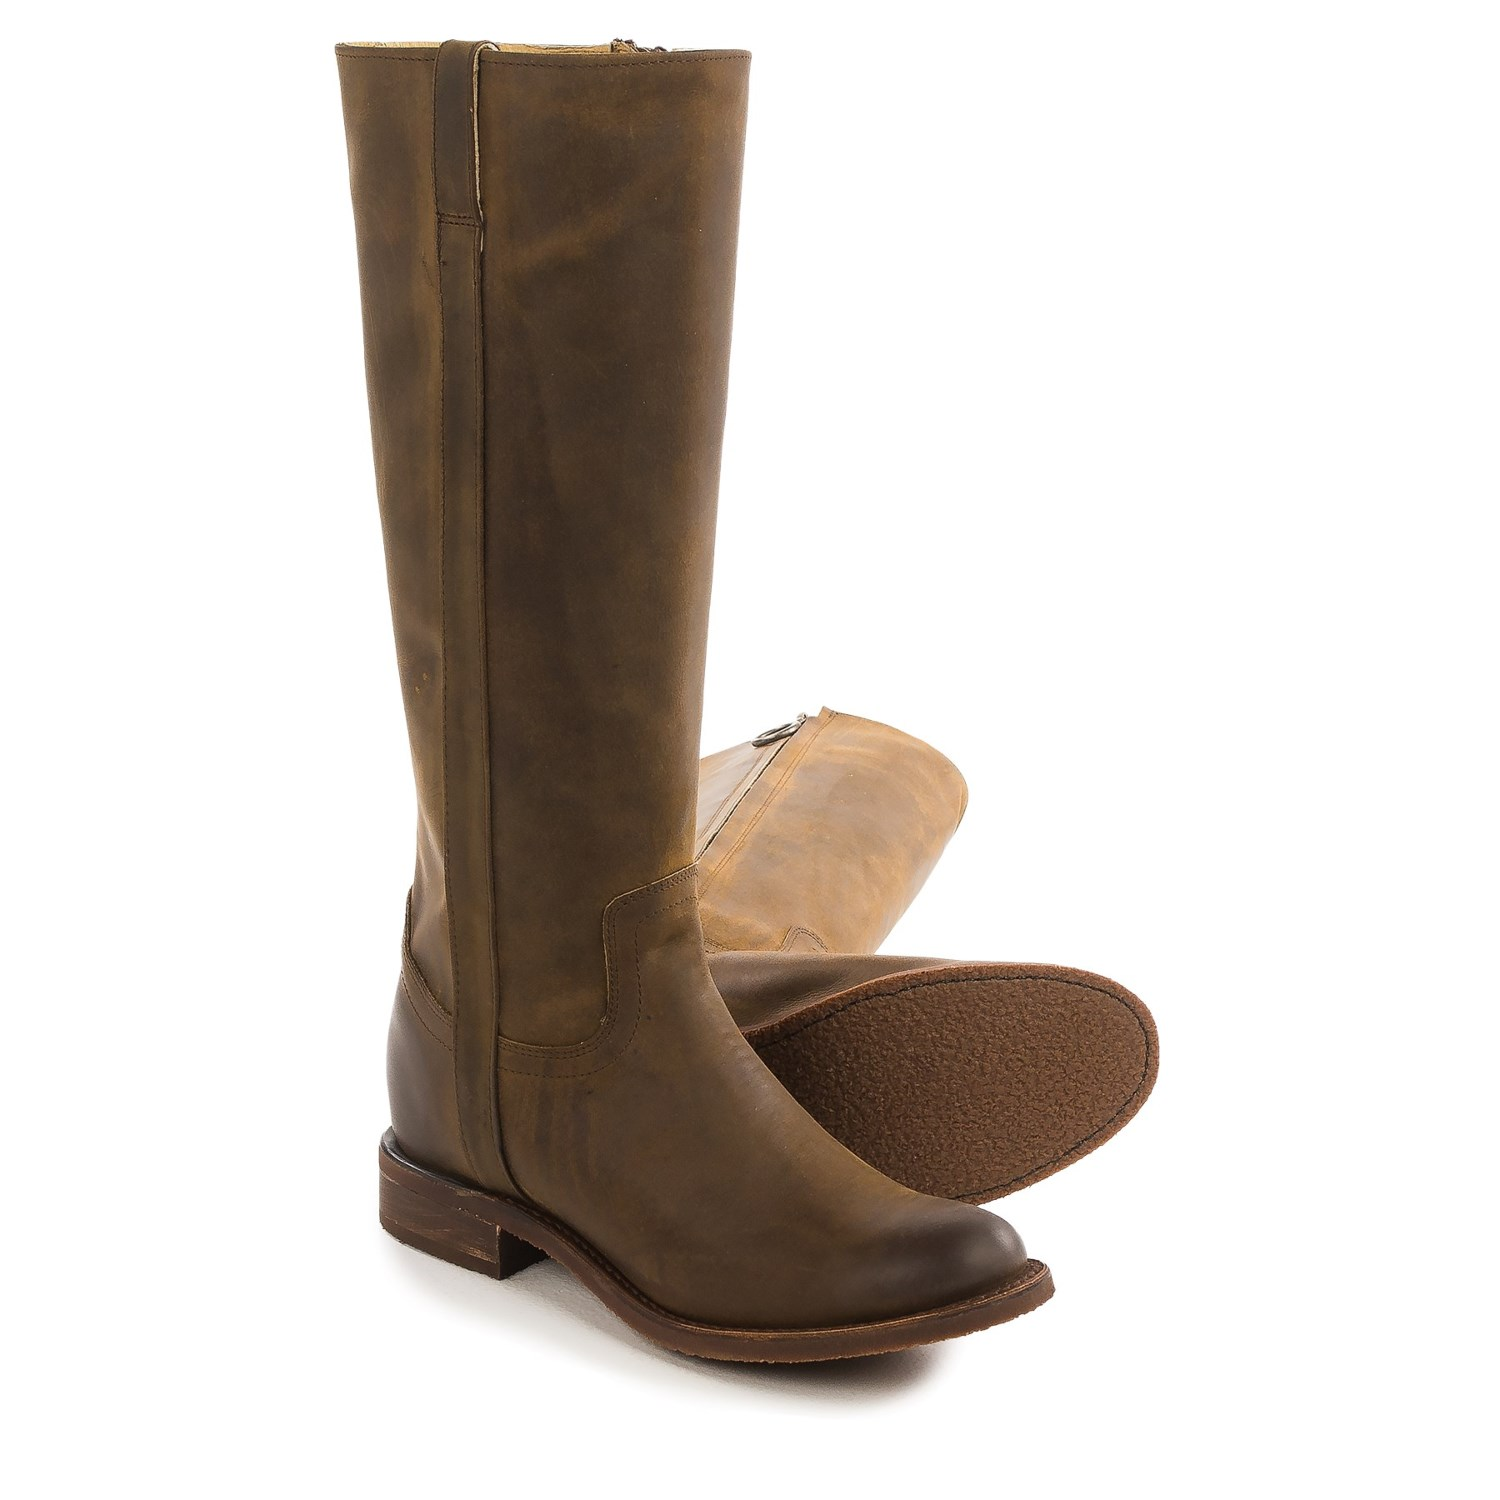 Justin Boots Bay Apache Fashion Riding Boots (For Women) - Save 67% 147fc1b103